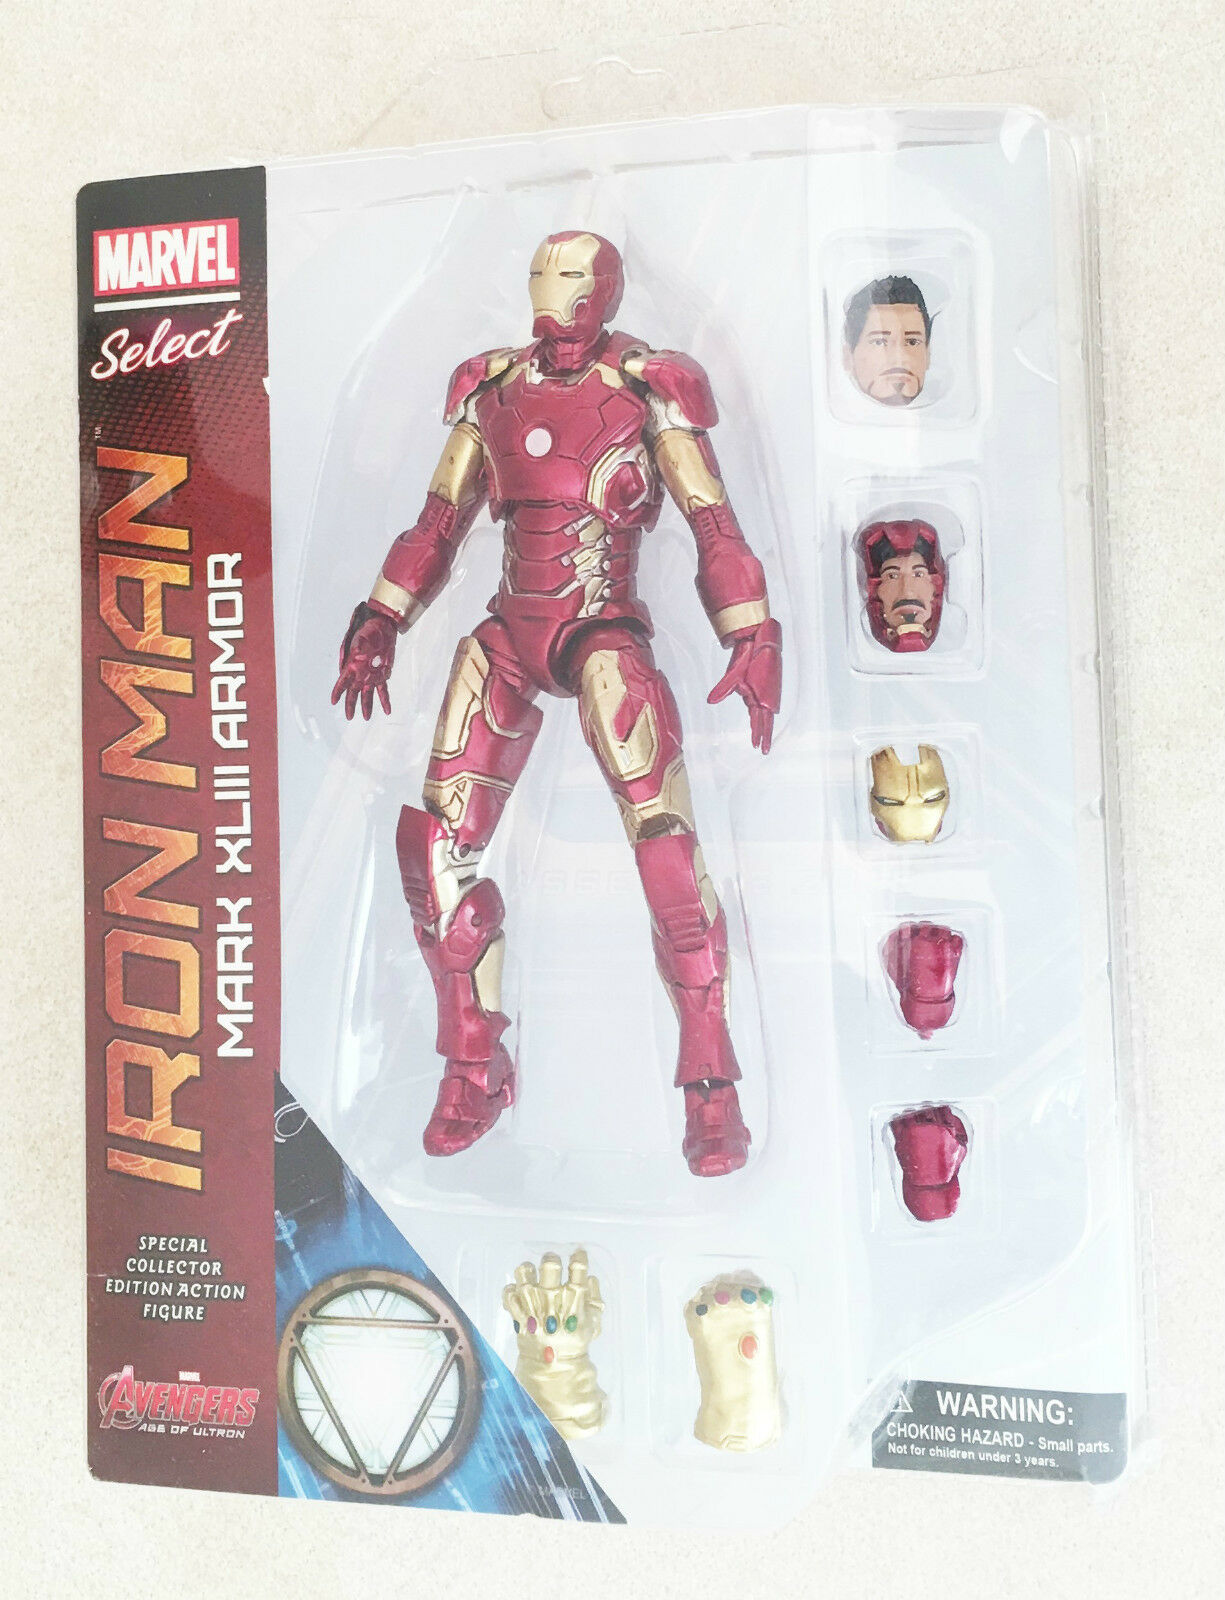 Marvel Avengers Iron Man Mark XLIII Armor PVC Ages 4+ New Toy Ironman Boys Play